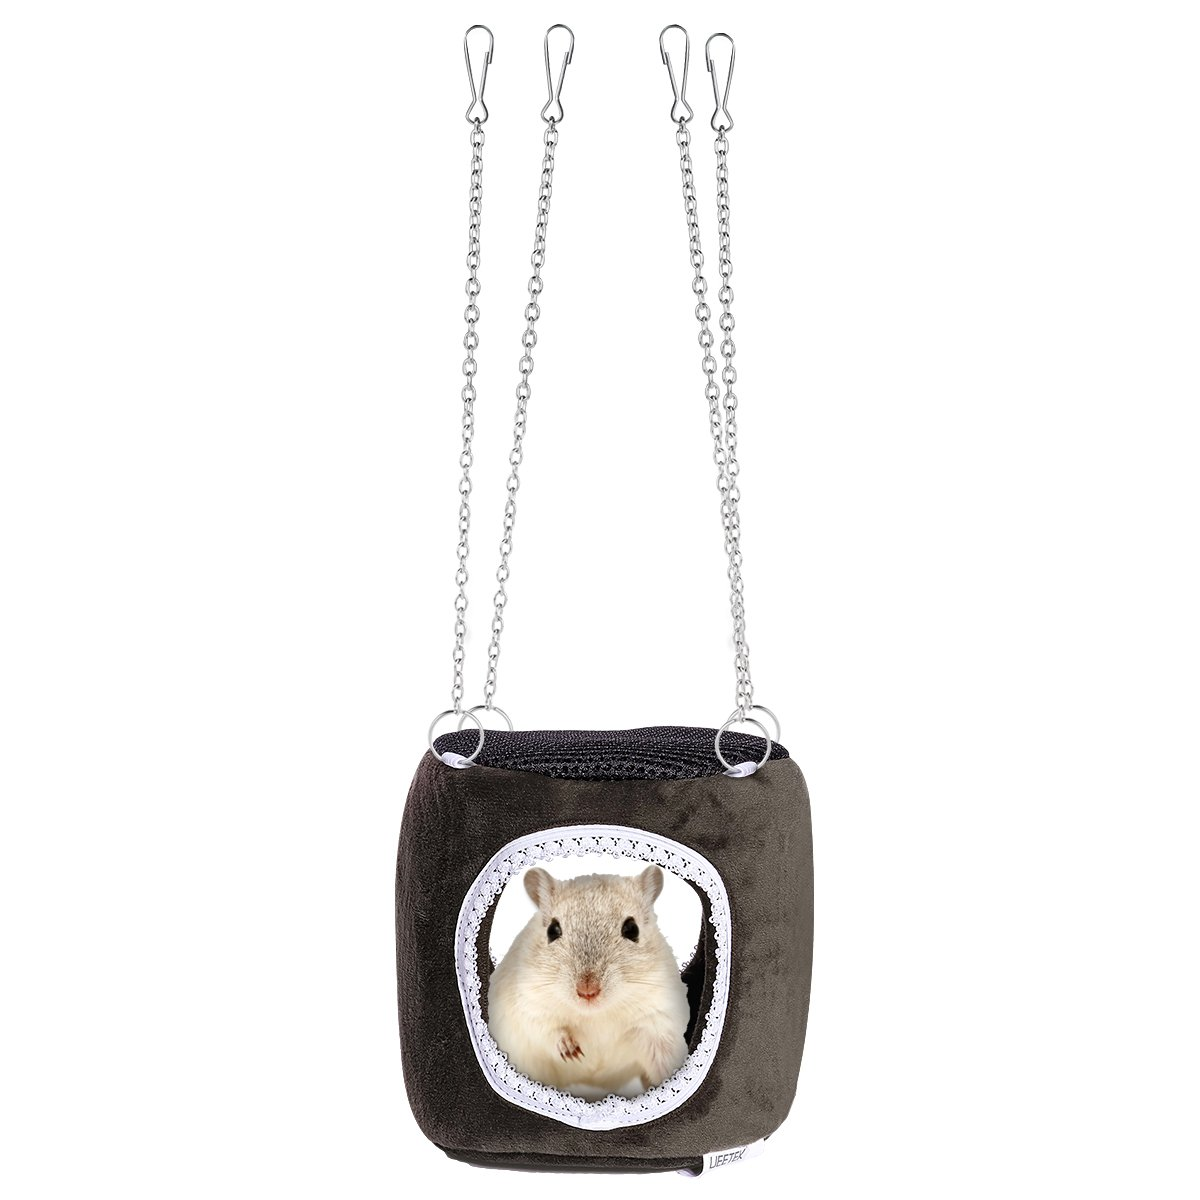 In Design; 1.4m Adjustable Pet Hamster Harness Rope Gerbil Cotton Rope Harness Lead Collar For Rat Mouse Hamster Pet Cage Leash Novel